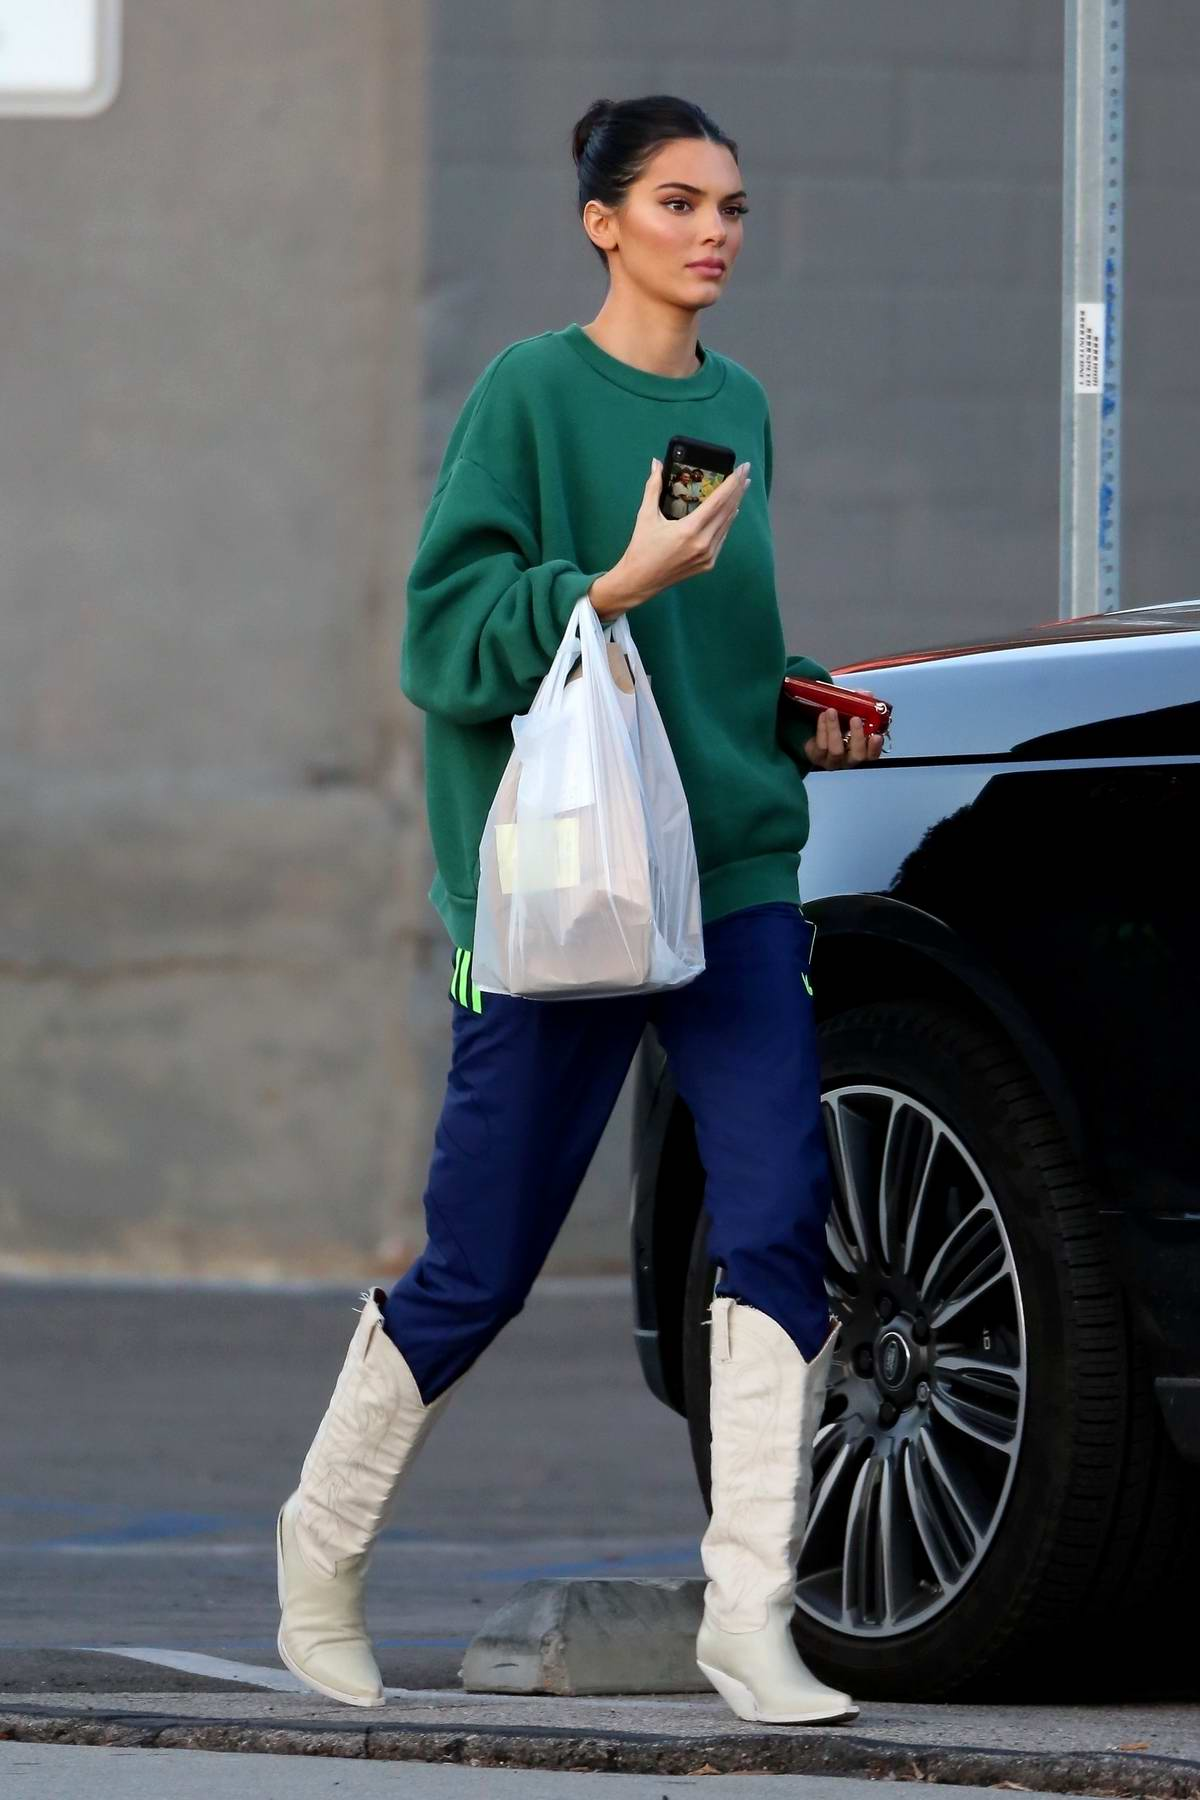 Kendall Jenner sports a green sweatshirt, blue track pants with knee high boots as she arrives for a photoshoot at Milk Studio in Los Angeles